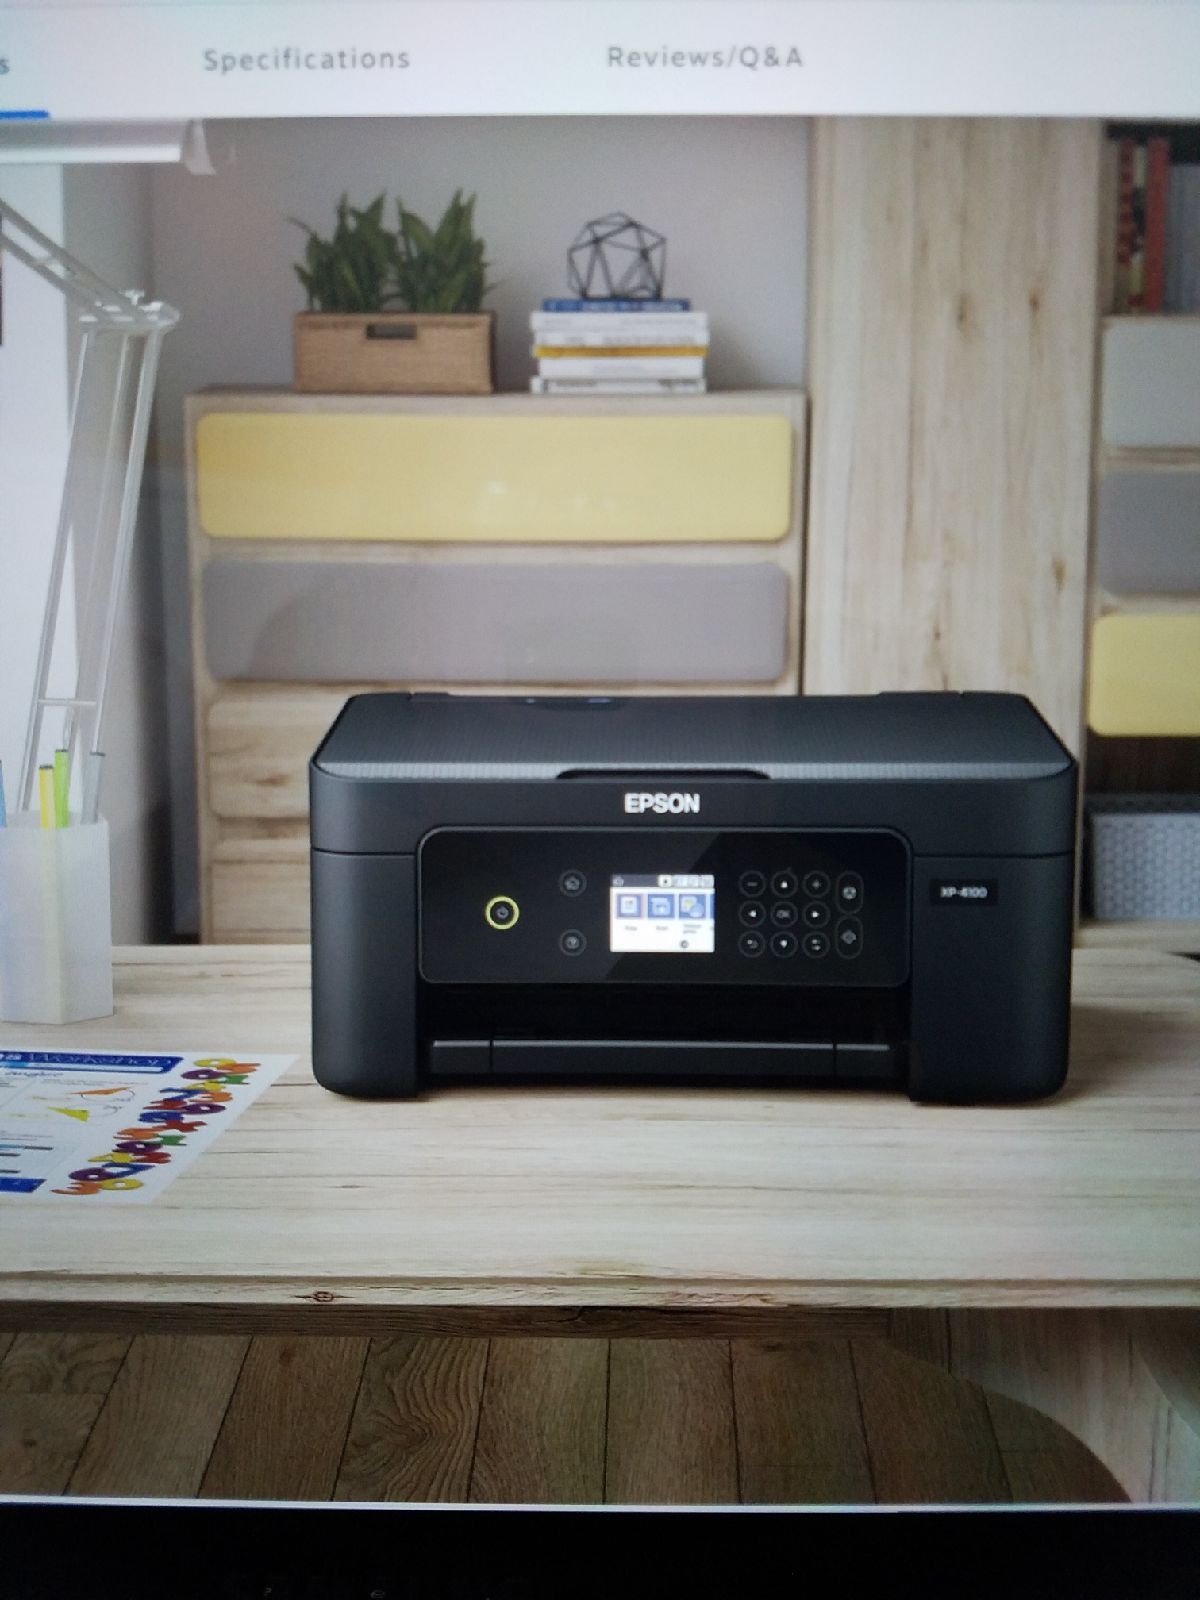 Epson wireless XP4100 all in one printer